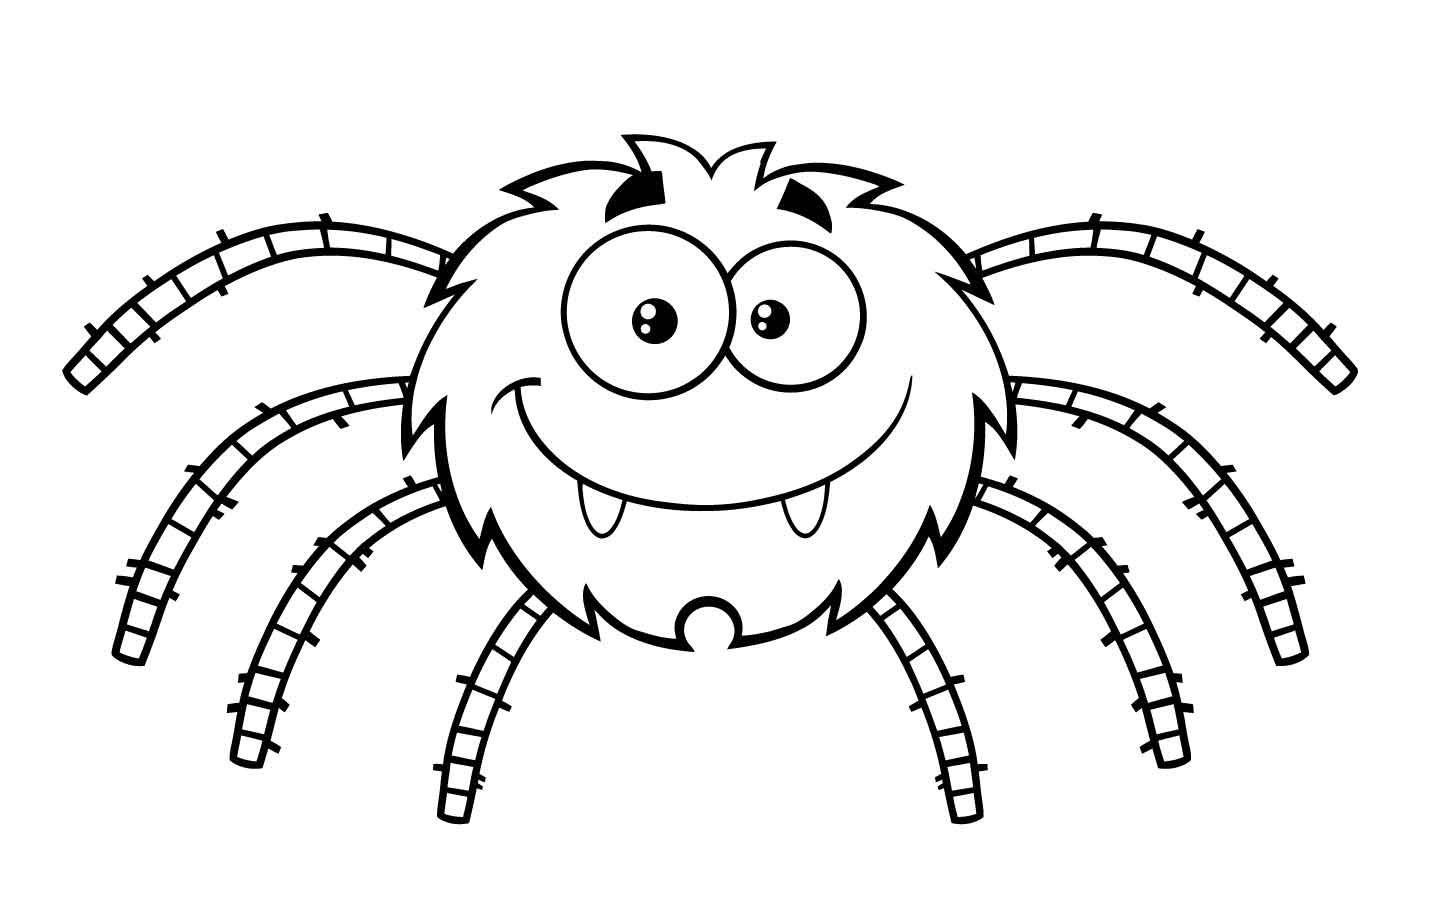 spider coloring book halloween spider coloring pages printable halloween spider book spider coloring